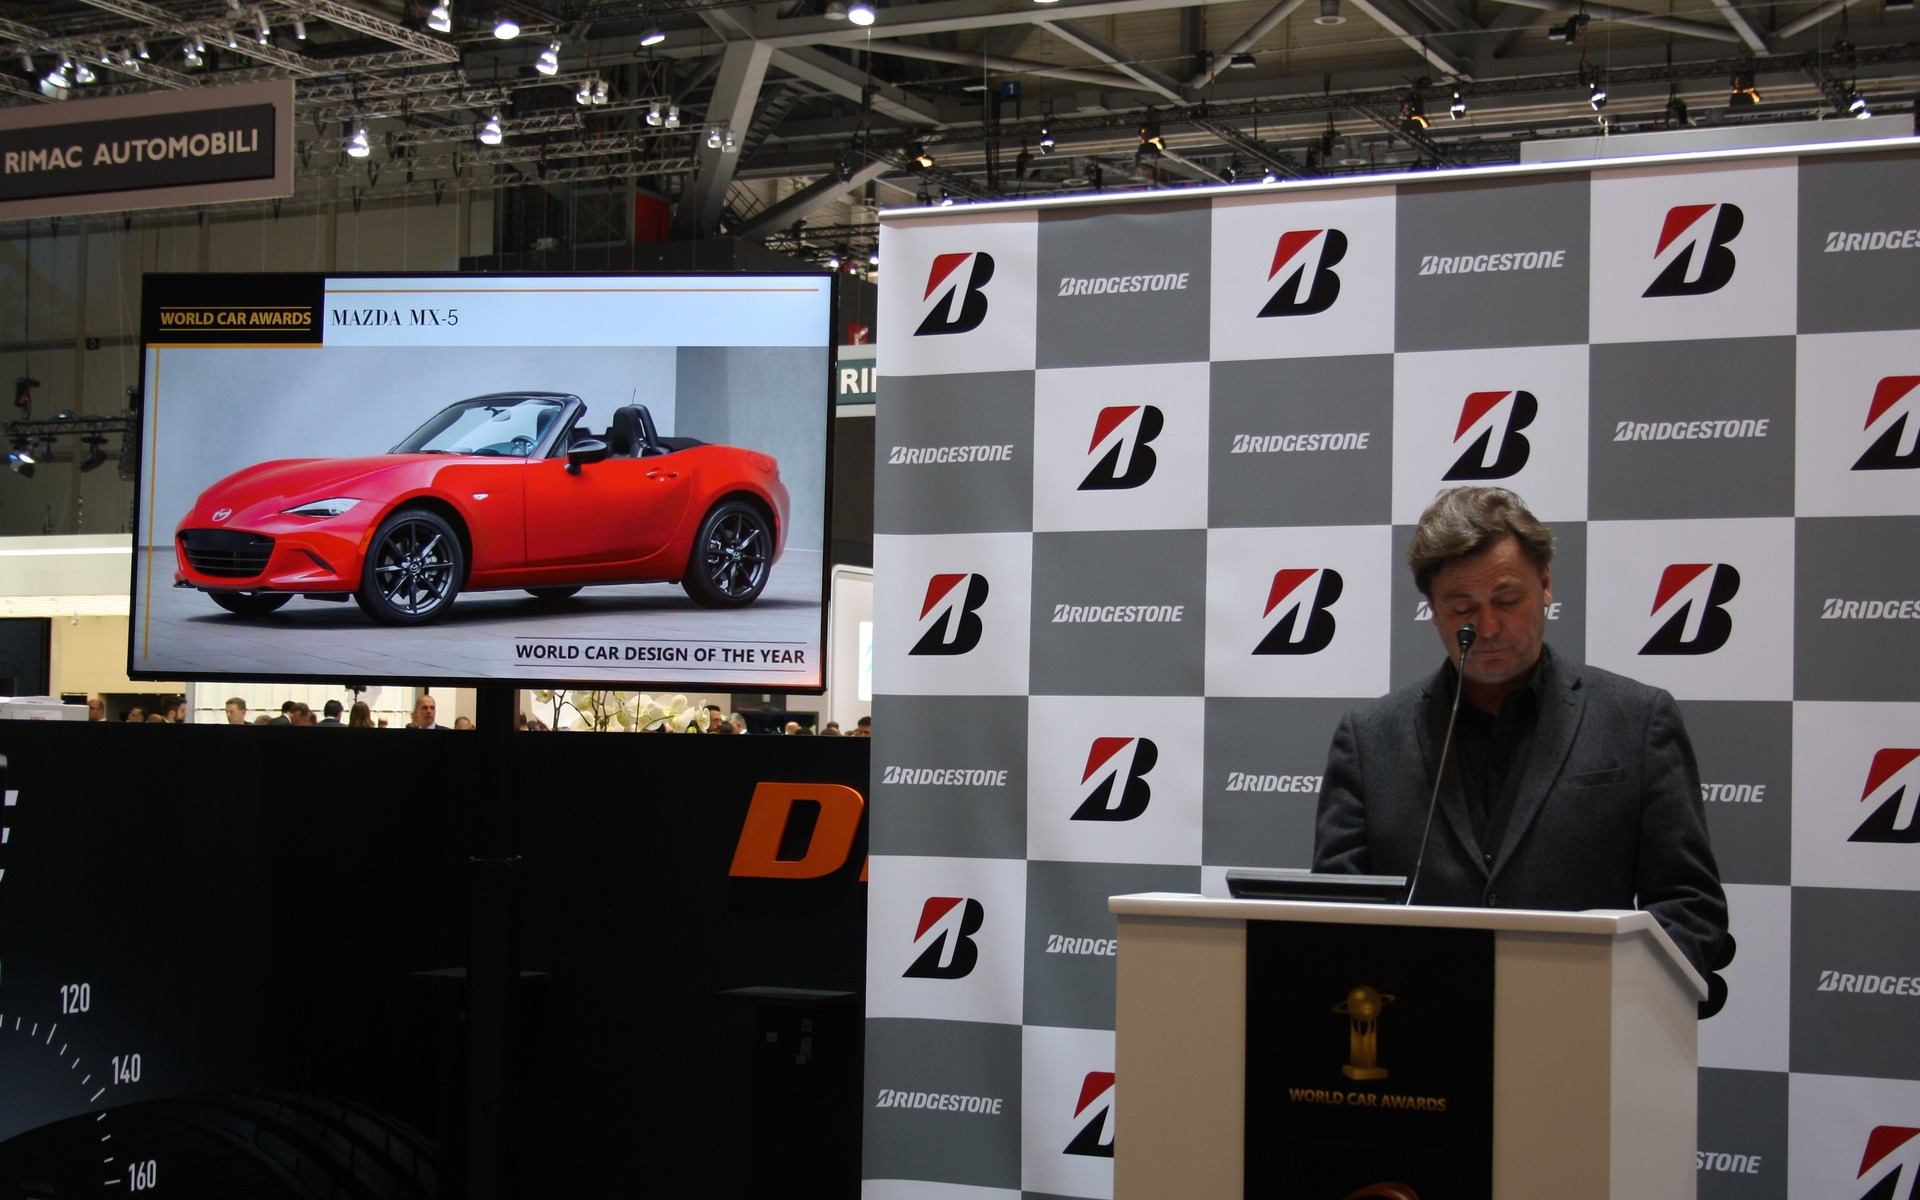 2016 World Car Design of the Year finalist: Mazda MX-5